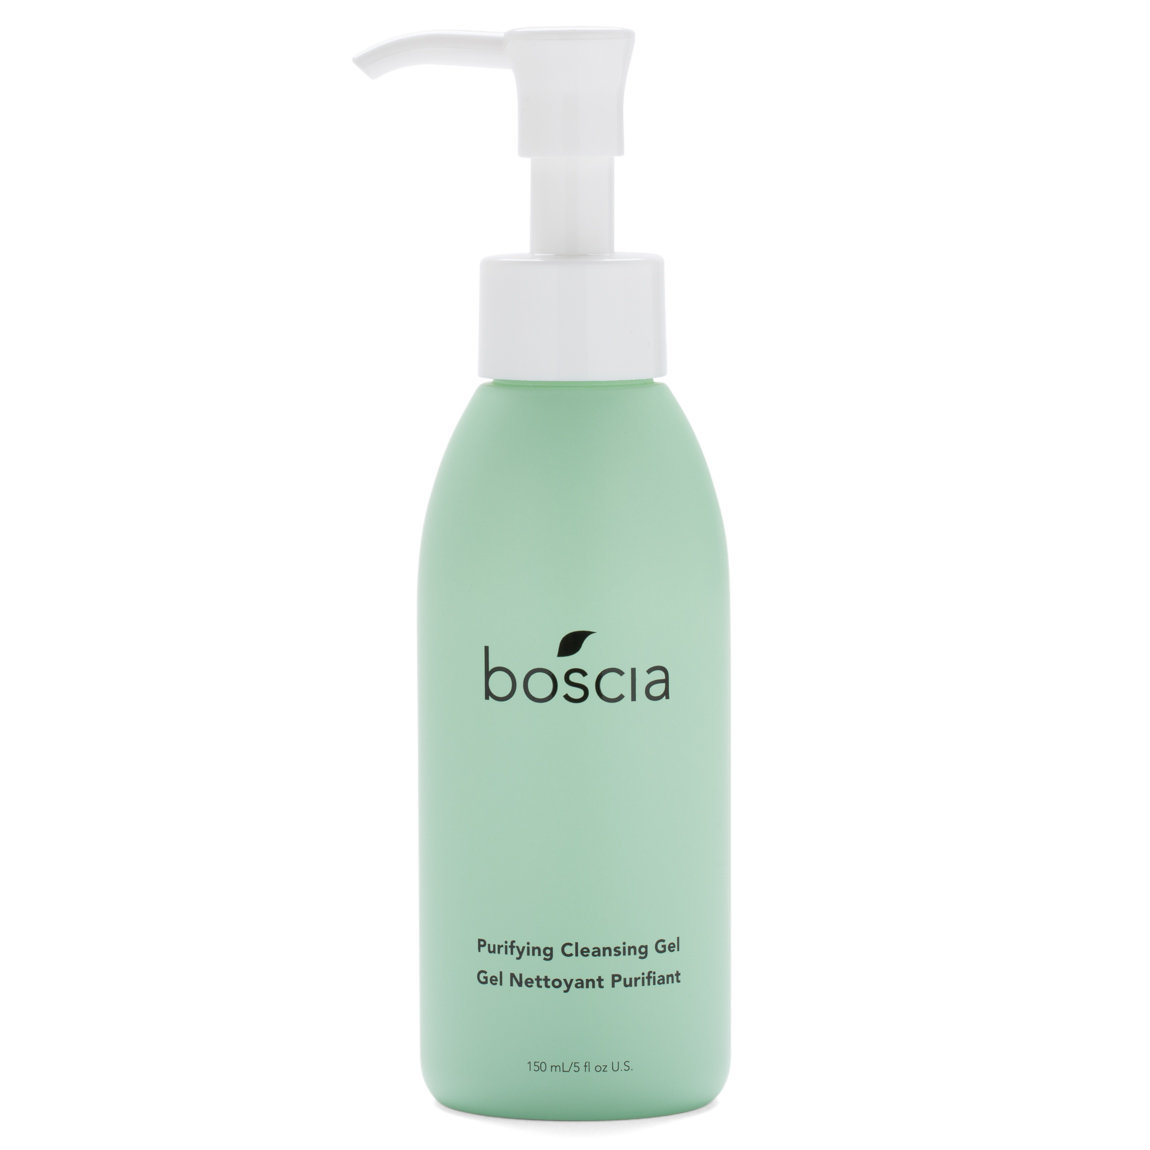 boscia Purifying Cleansing Gel product smear.